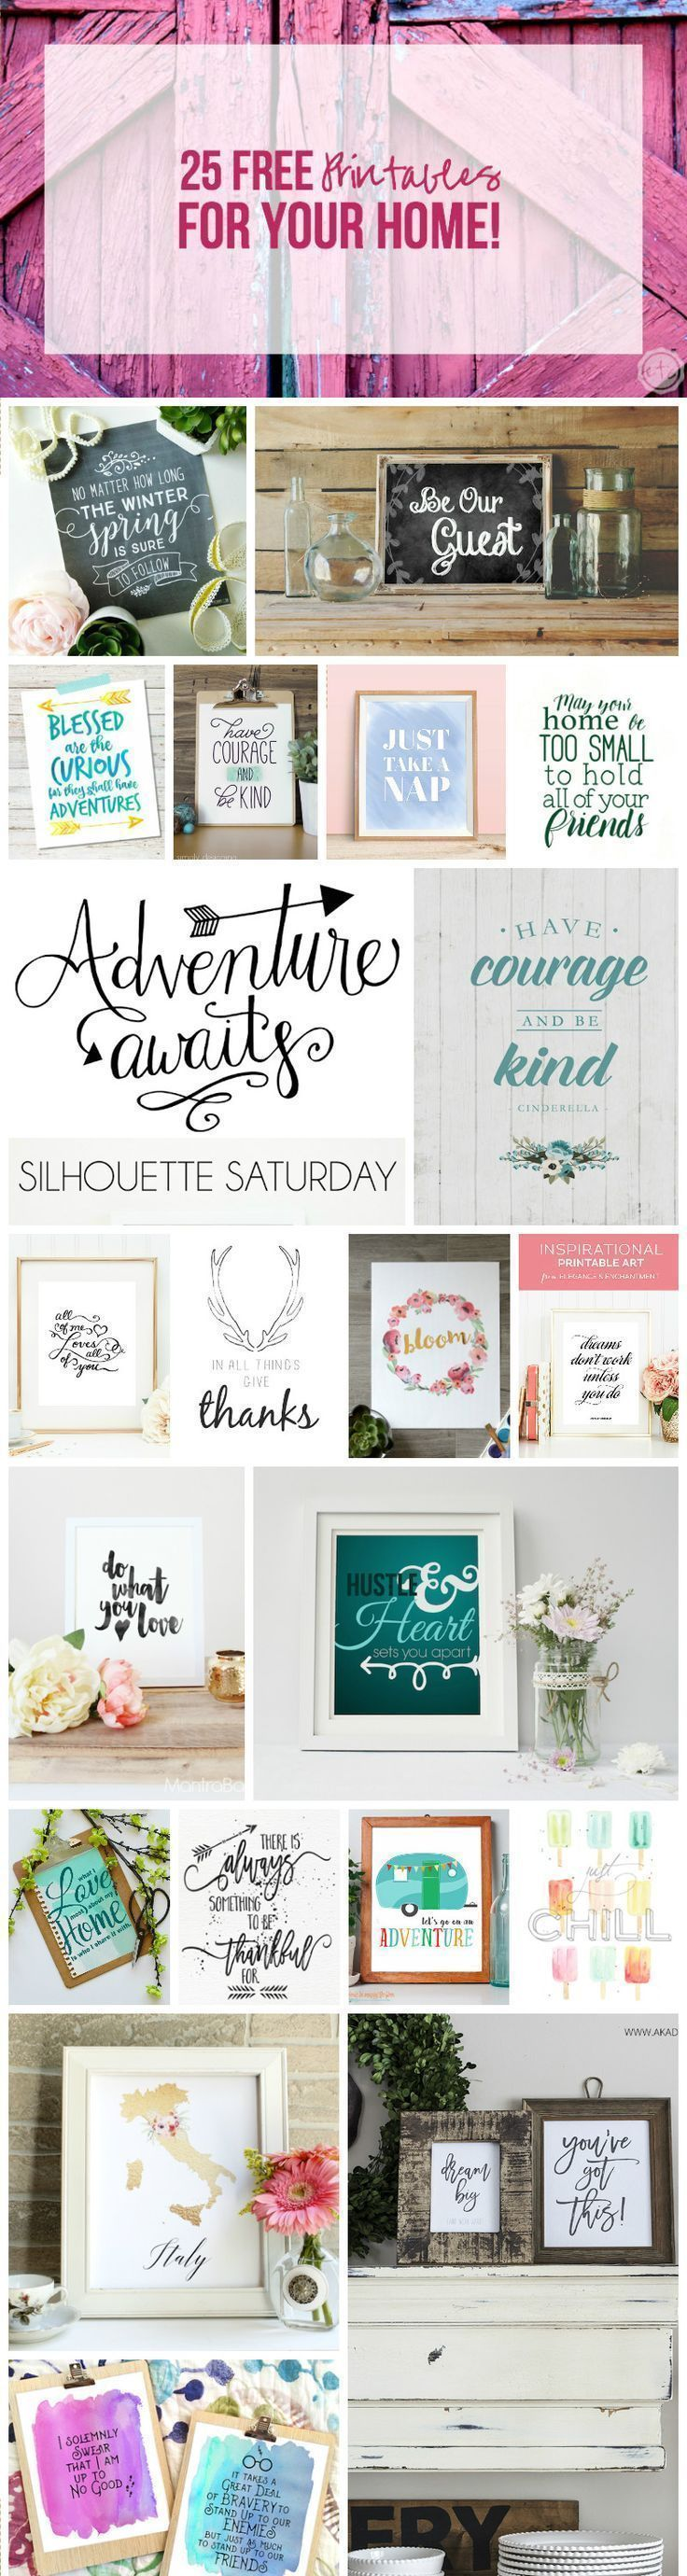 25 FREE Printables For Your Home!